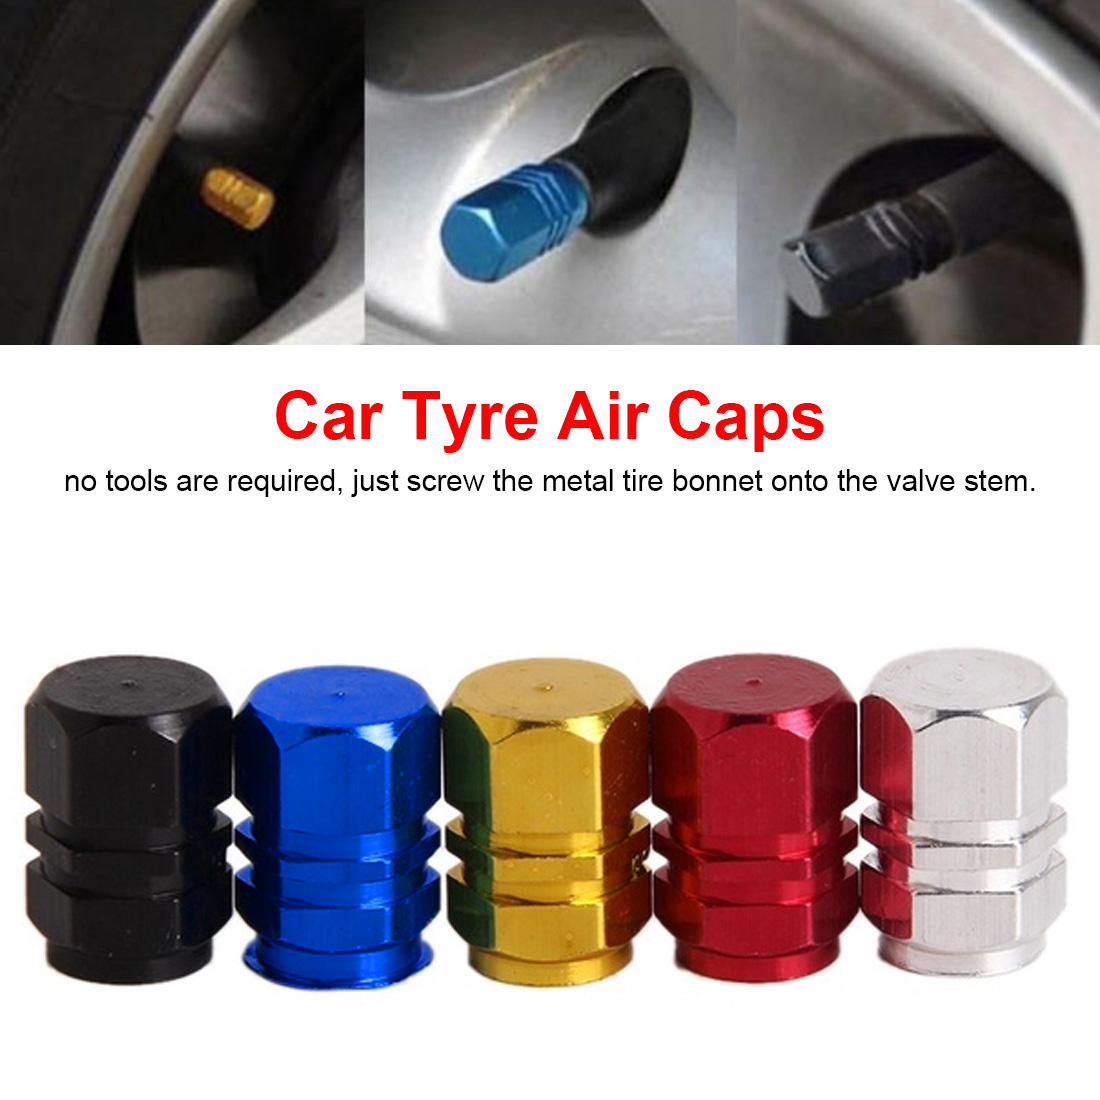 Hot Selling New 4pcs/pack Car Tire Valve Stem Caps Colorful Black/Silver/Red/Gold/Blue Car Caps Aluminum Theftproof Valve Caps